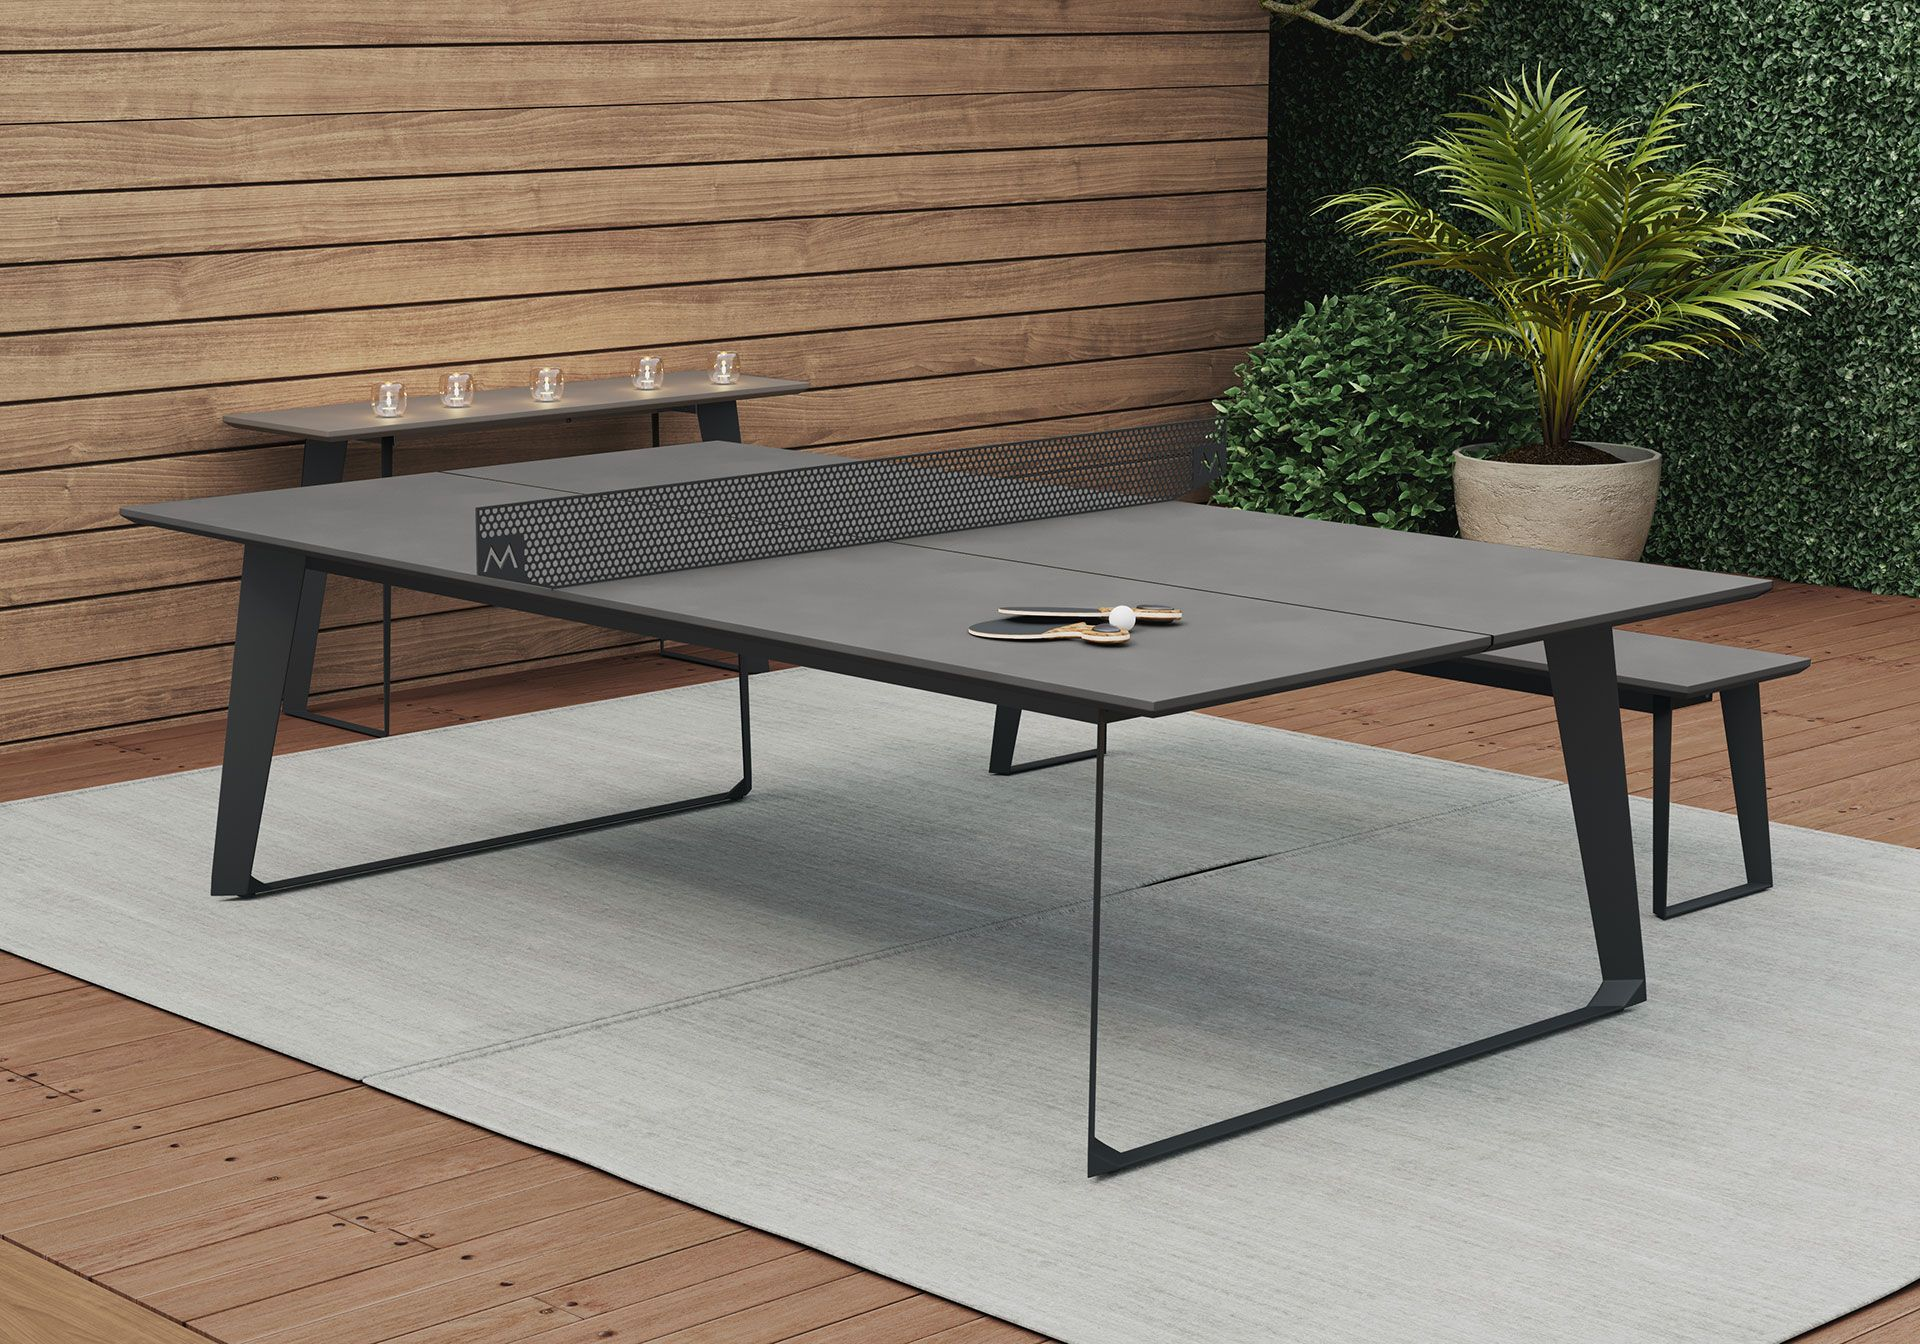 Amsterdam outdoor ping pong table by modloft